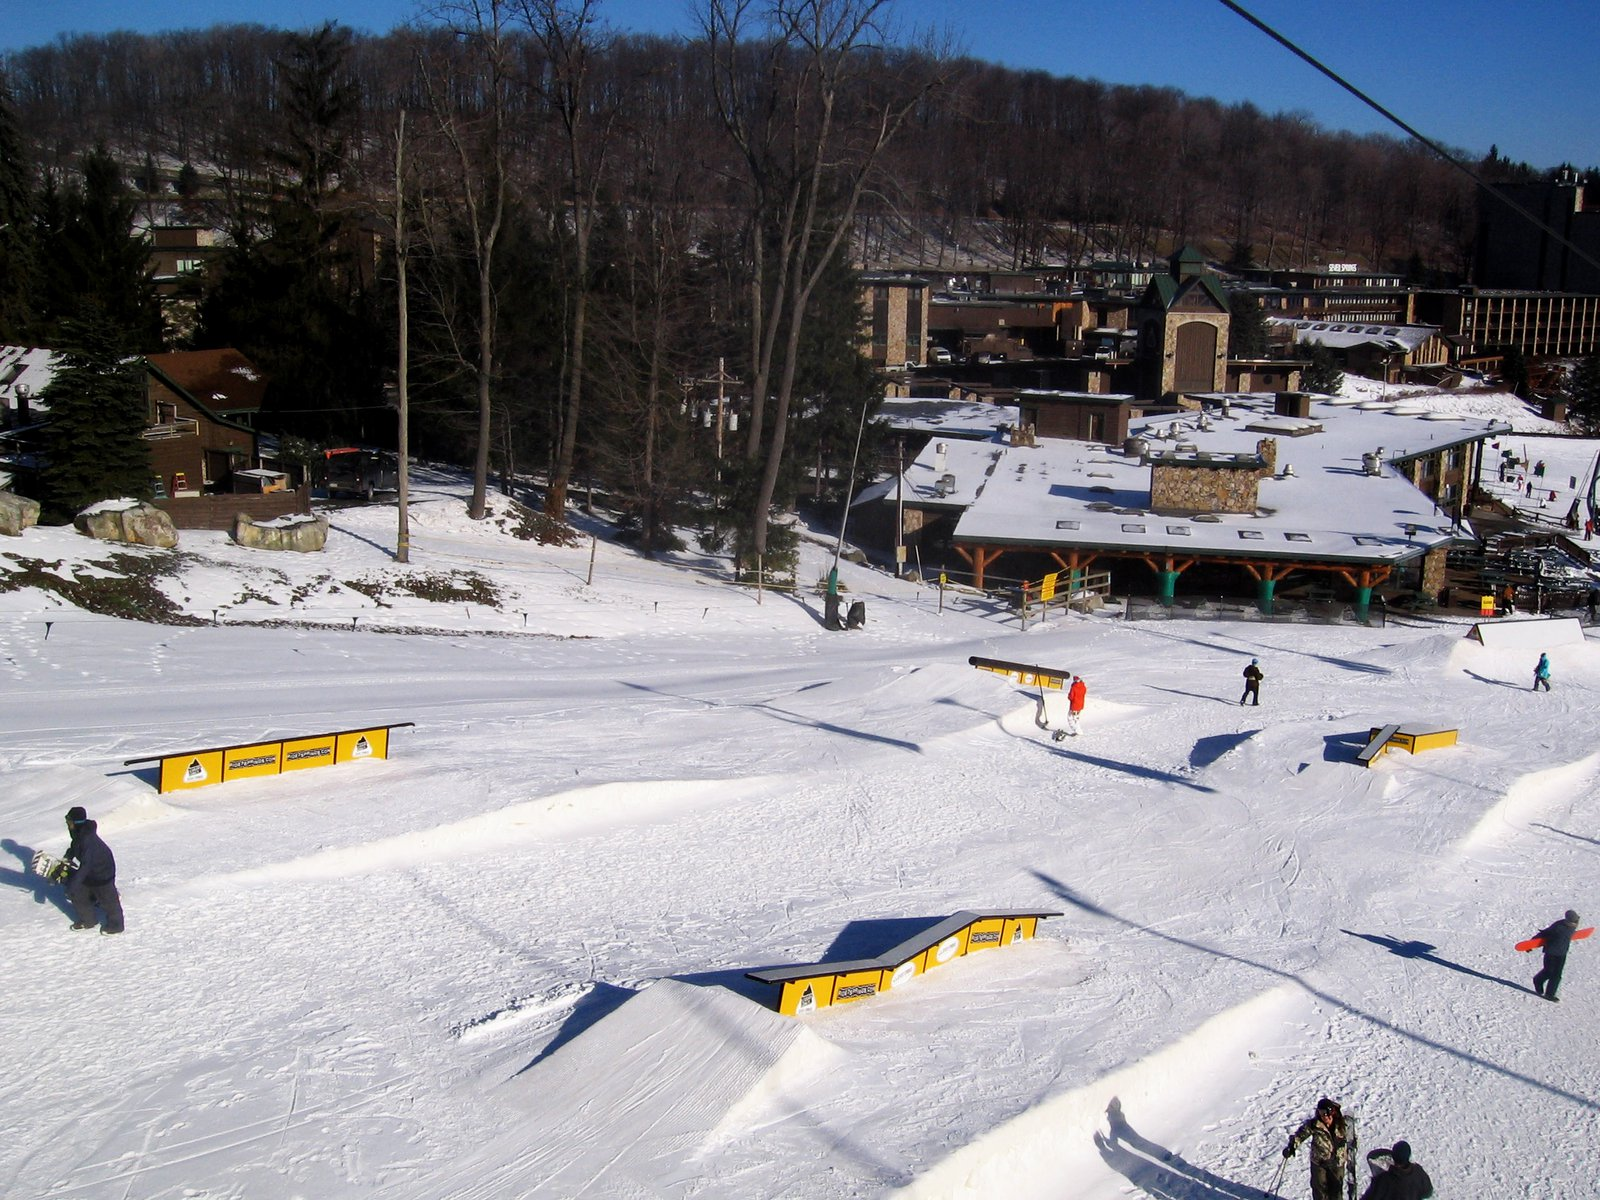 Early season at 7springs